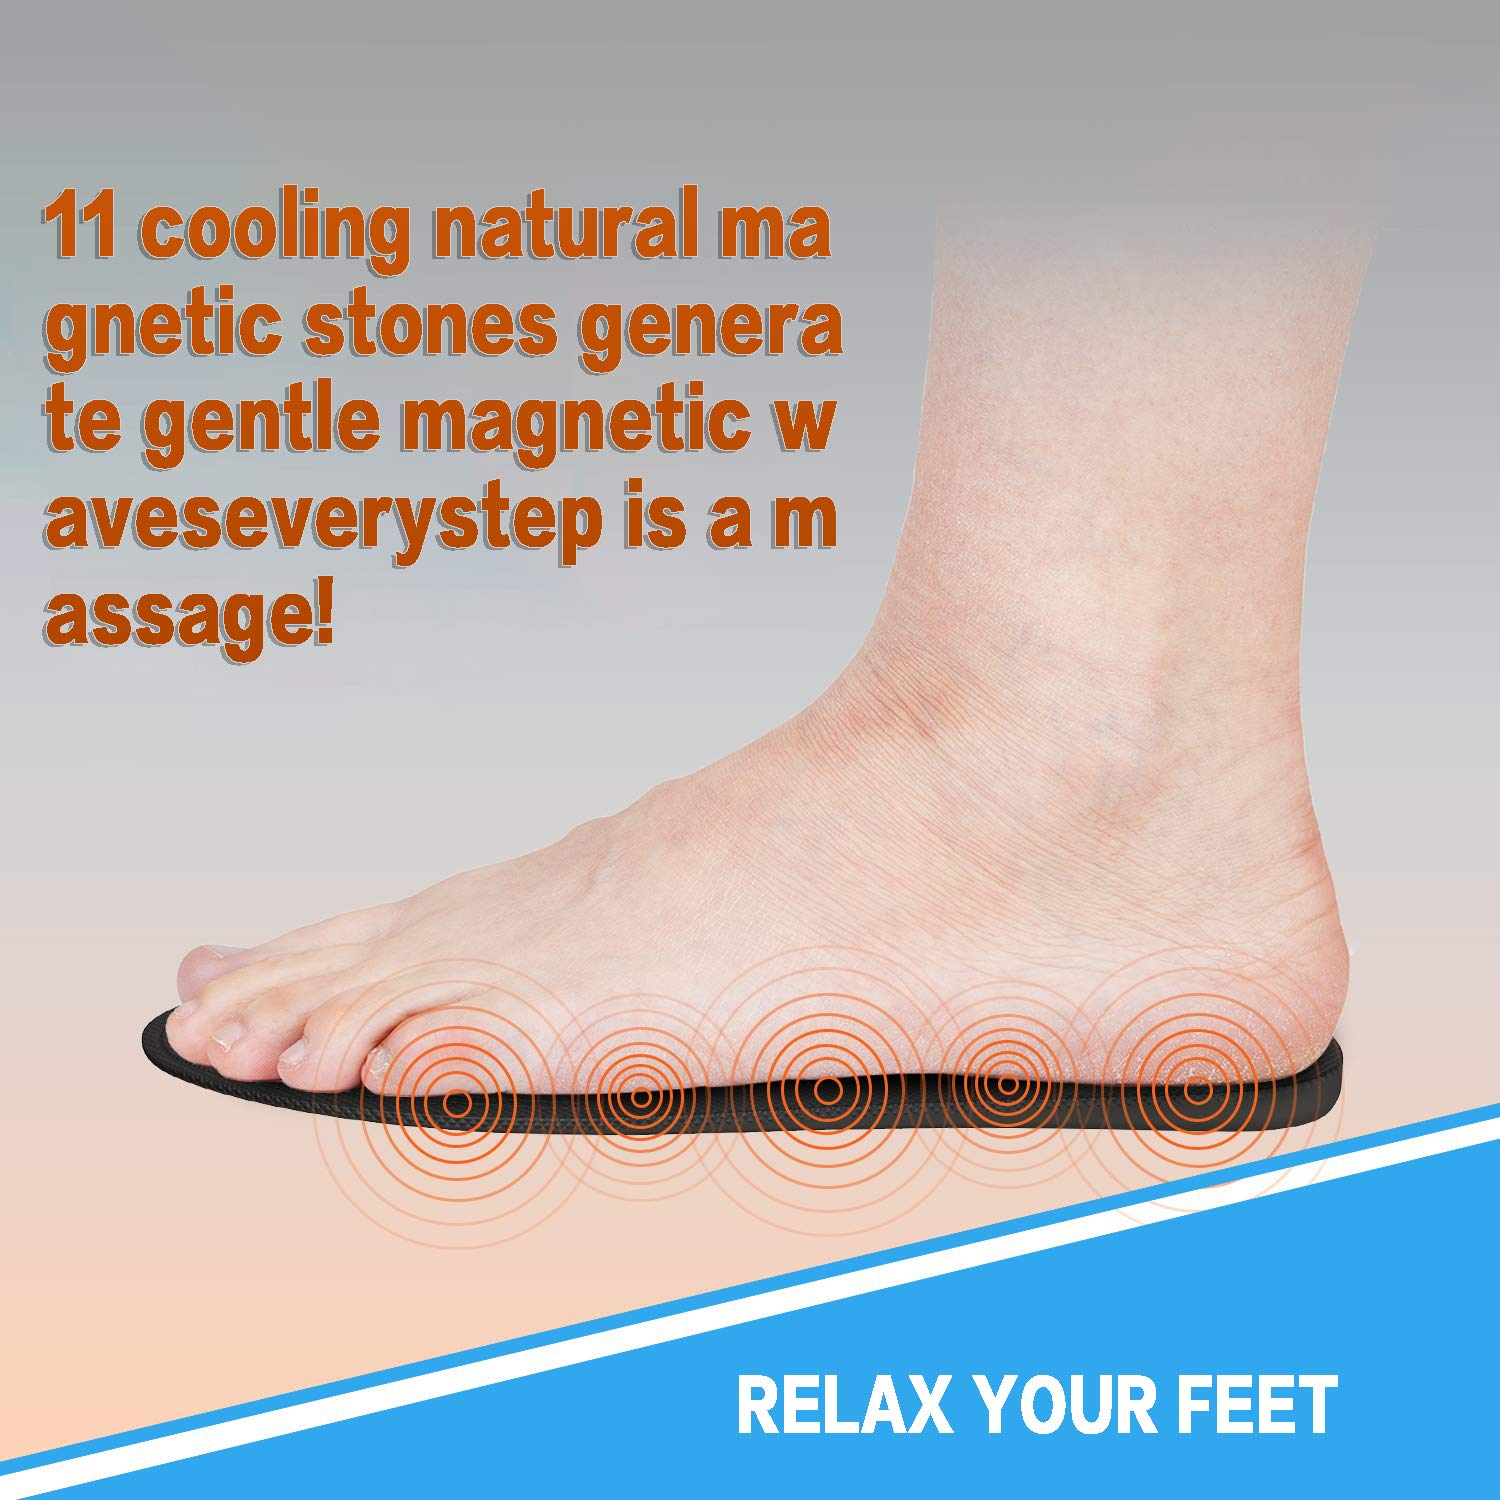 Premium Magnetic Reflexology Acupressure Effect \\nHealth Promote Circulatory Fatigue Relieve Health Therapy for Men Women 1 Pair Magnetic Massage Insoles,Breathable Foot Acupressure Shoe Pads